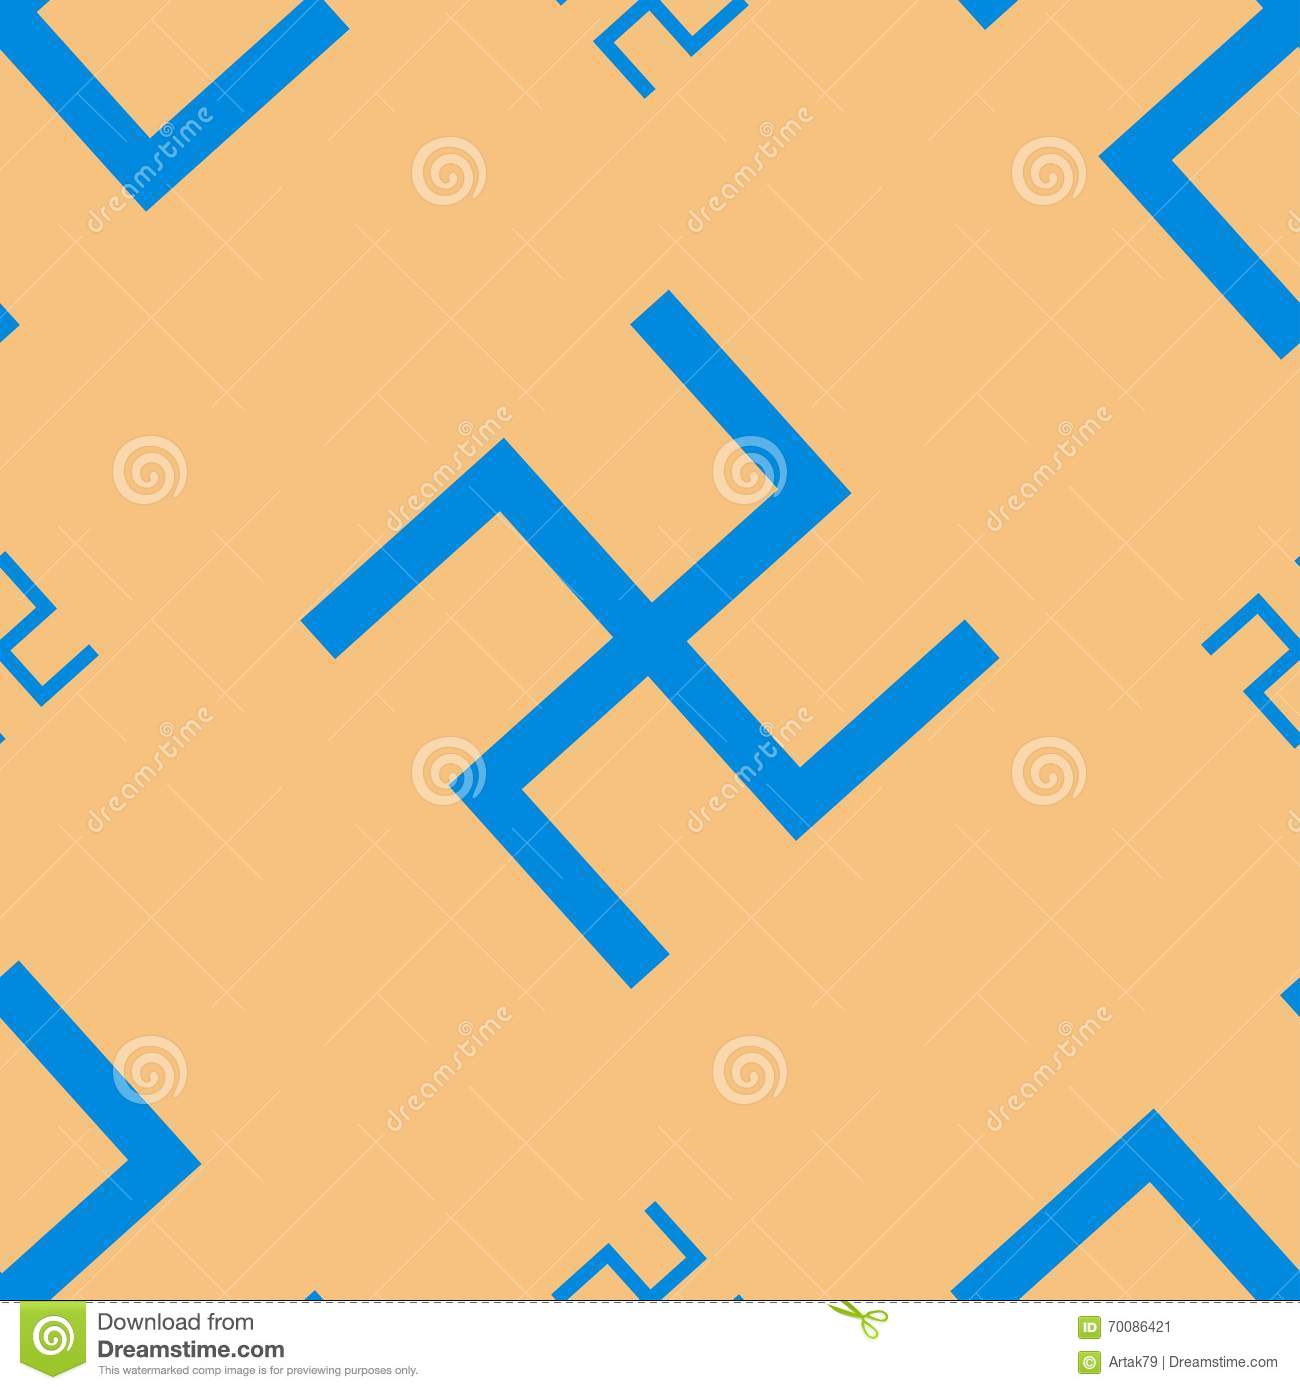 Eternity symbol pattern stock illustration illustration of eternity symbol pattern buycottarizona Image collections